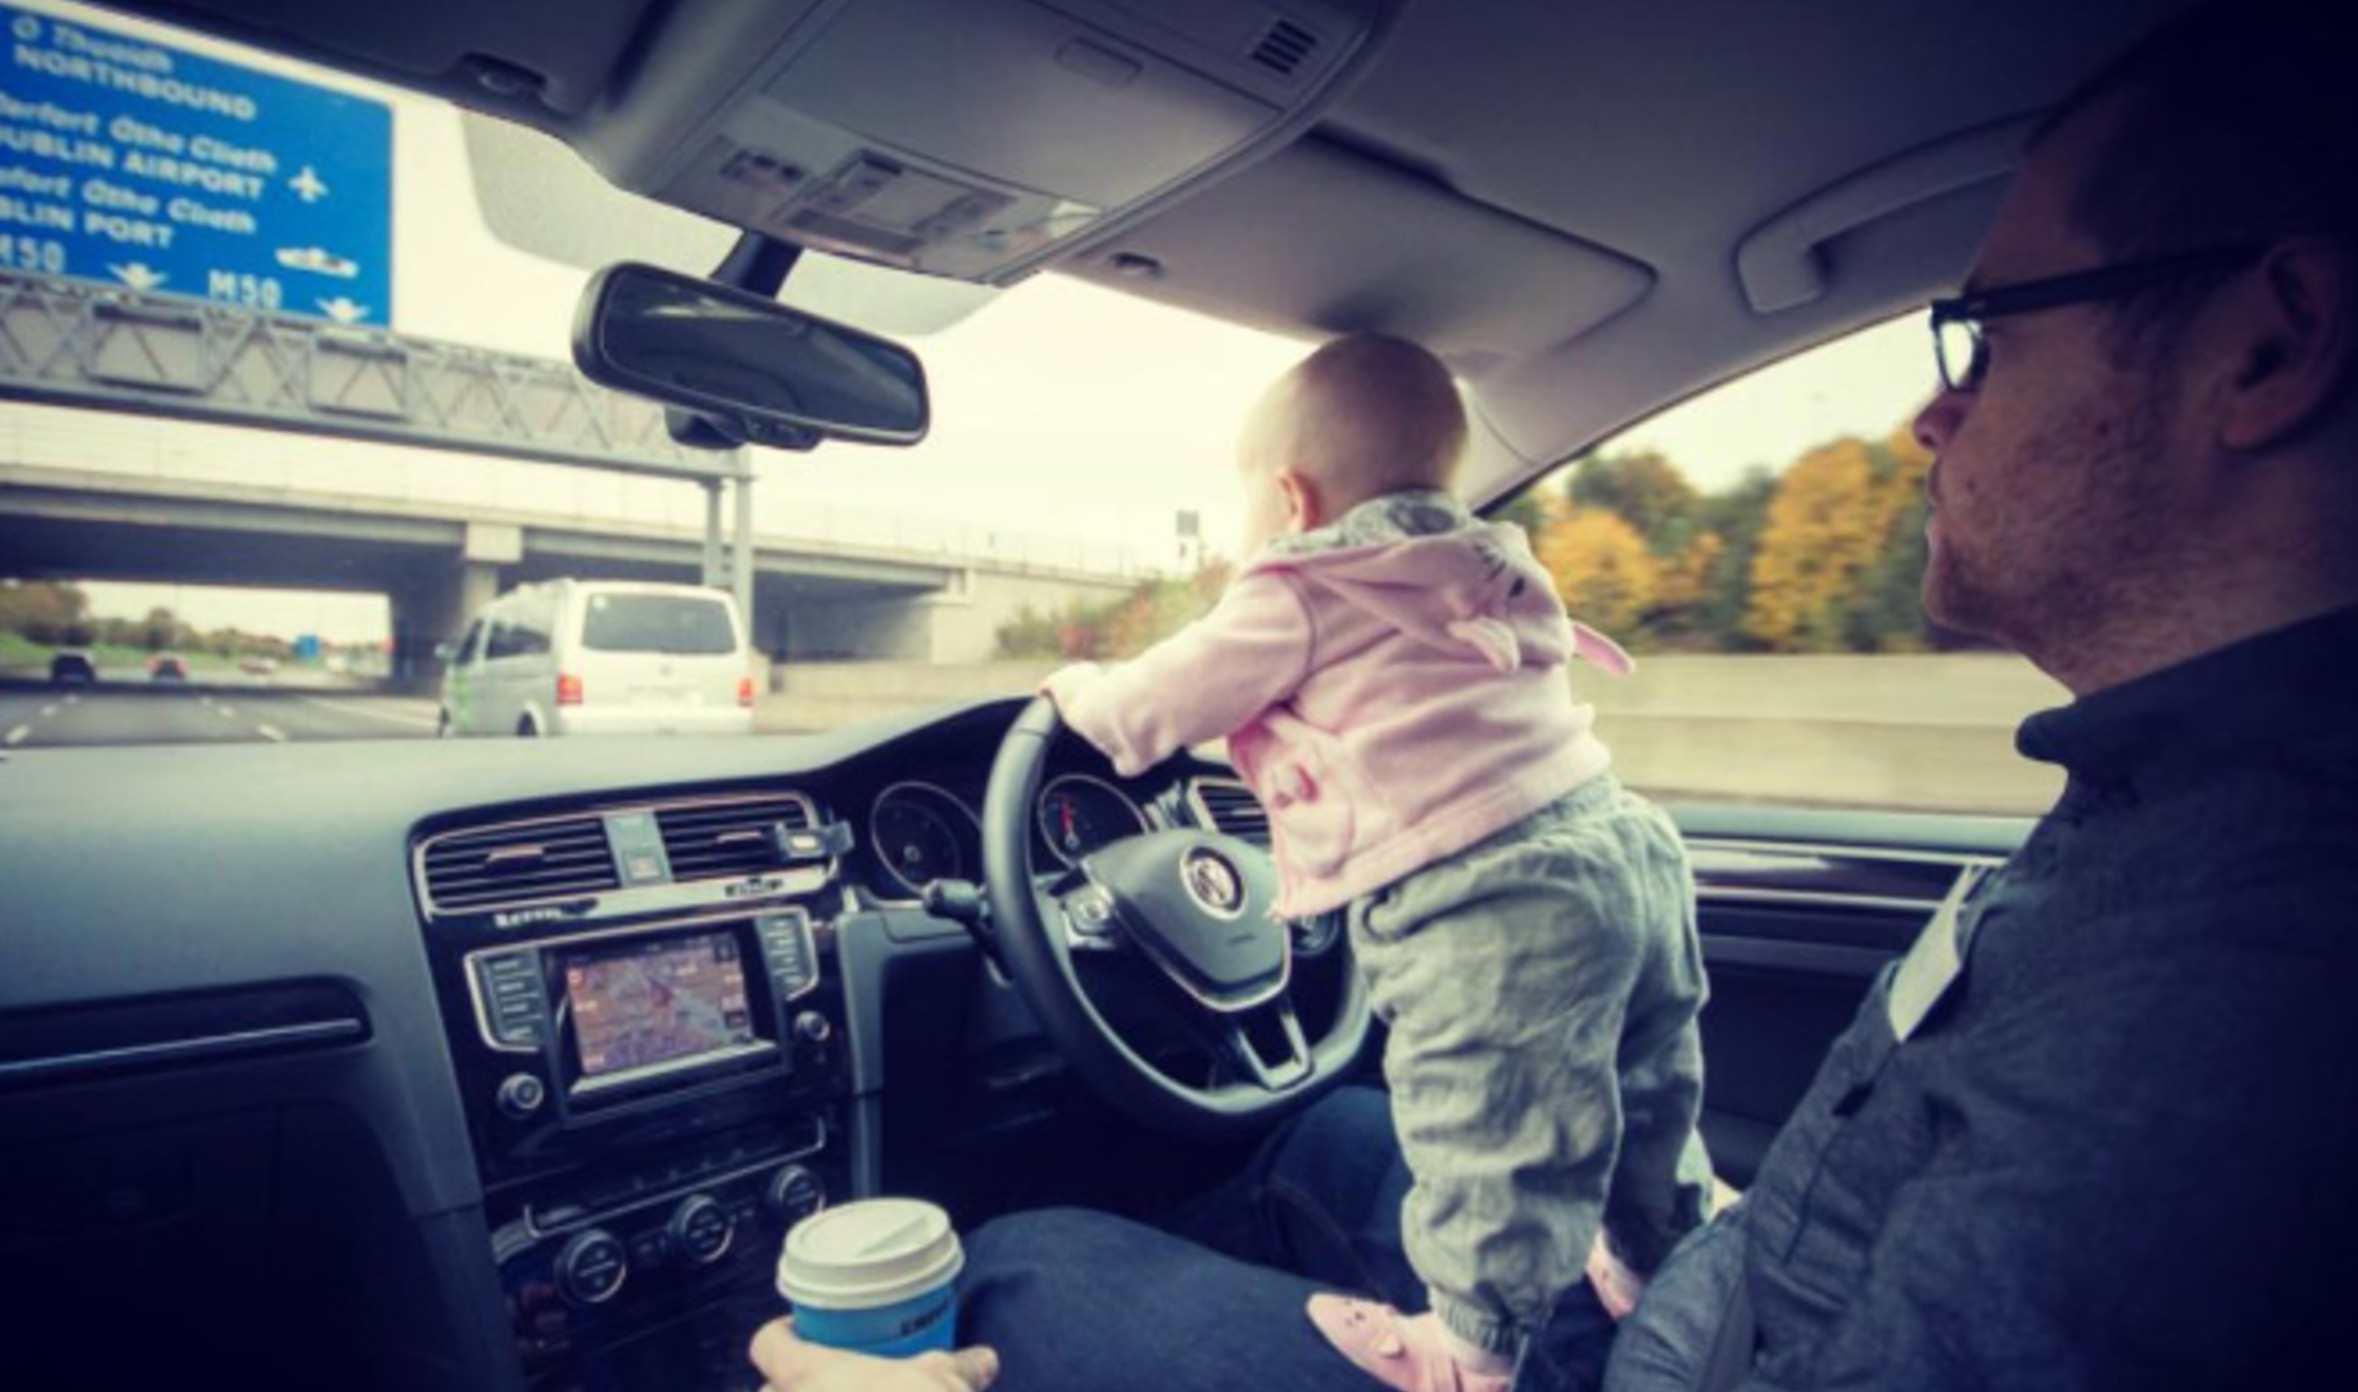 Dad Photoshops Daughter Into Dangerous Situations To Freak